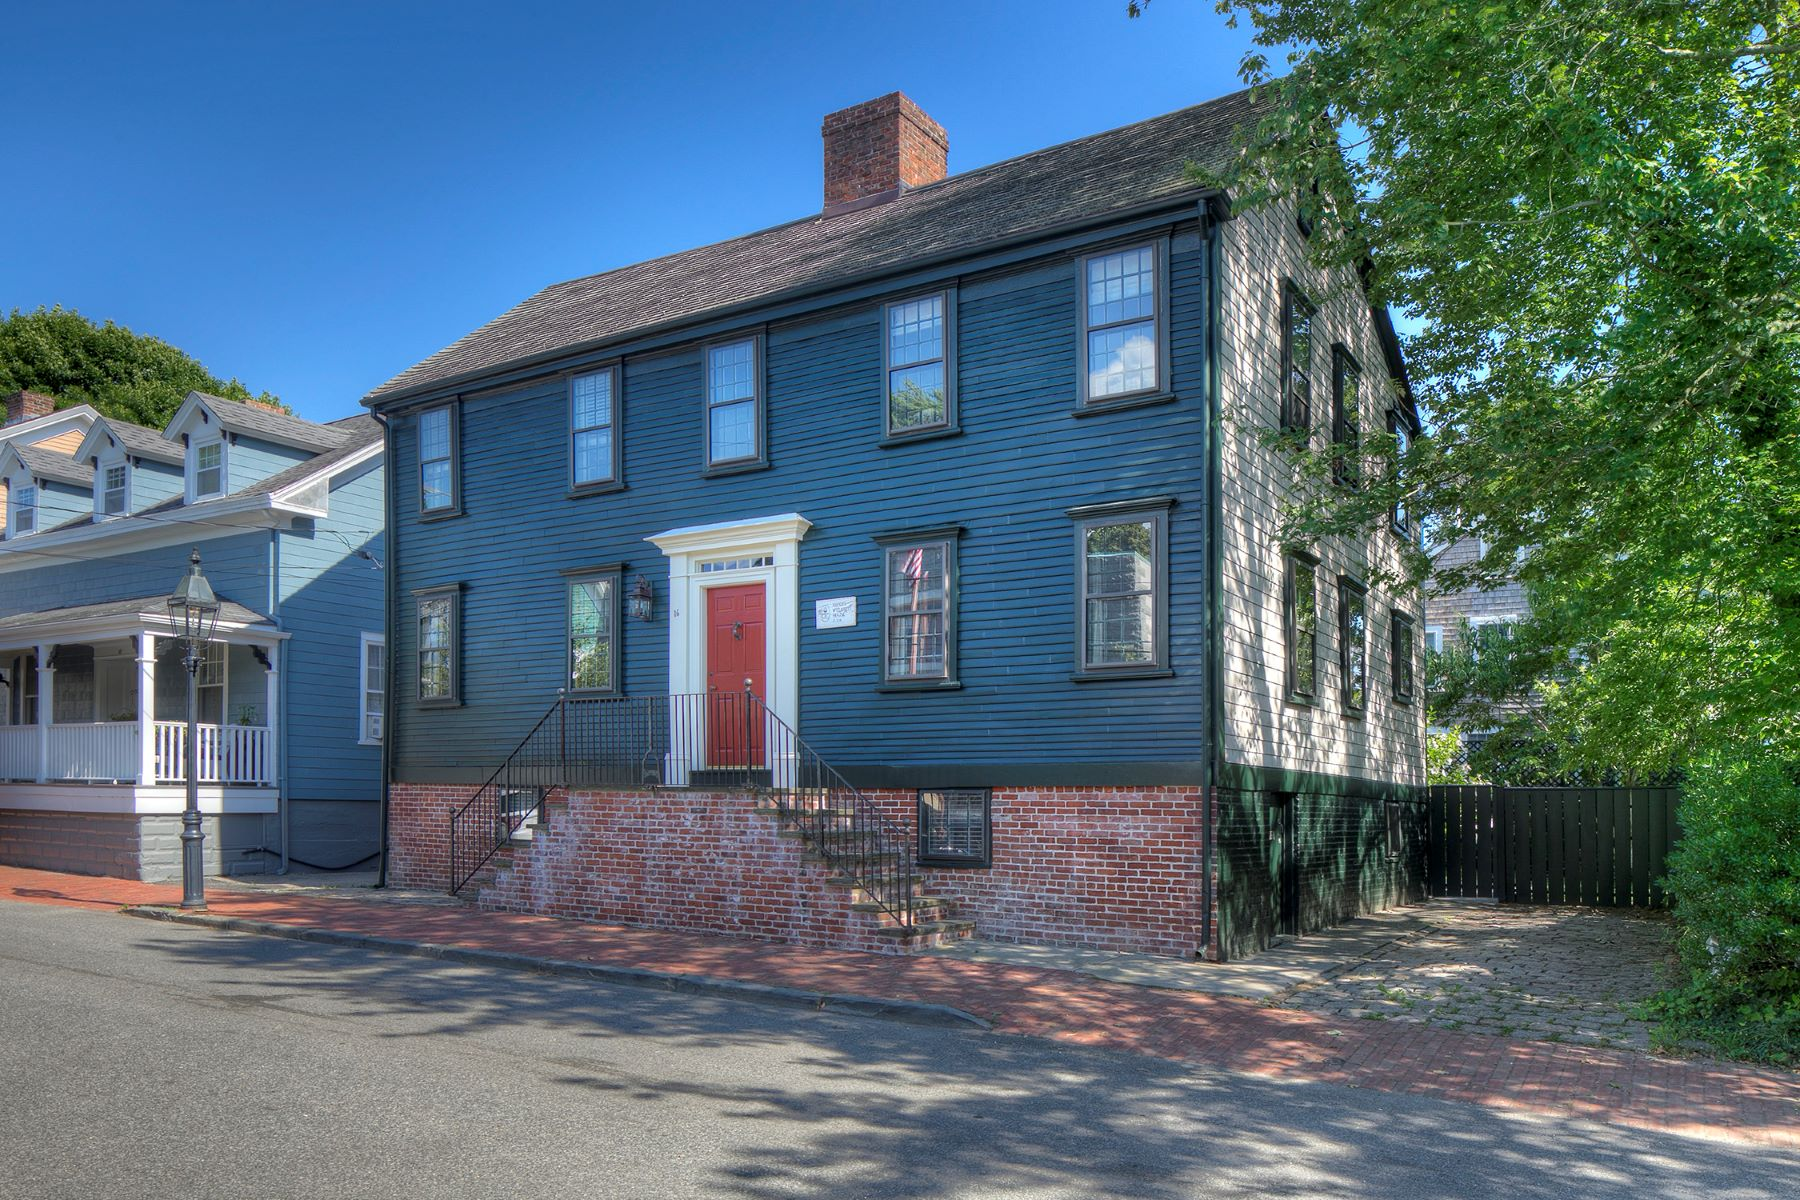 Single Family Homes for Sale at William Claggett House 16 Bridge Street Newport, Rhode Island 02840 United States